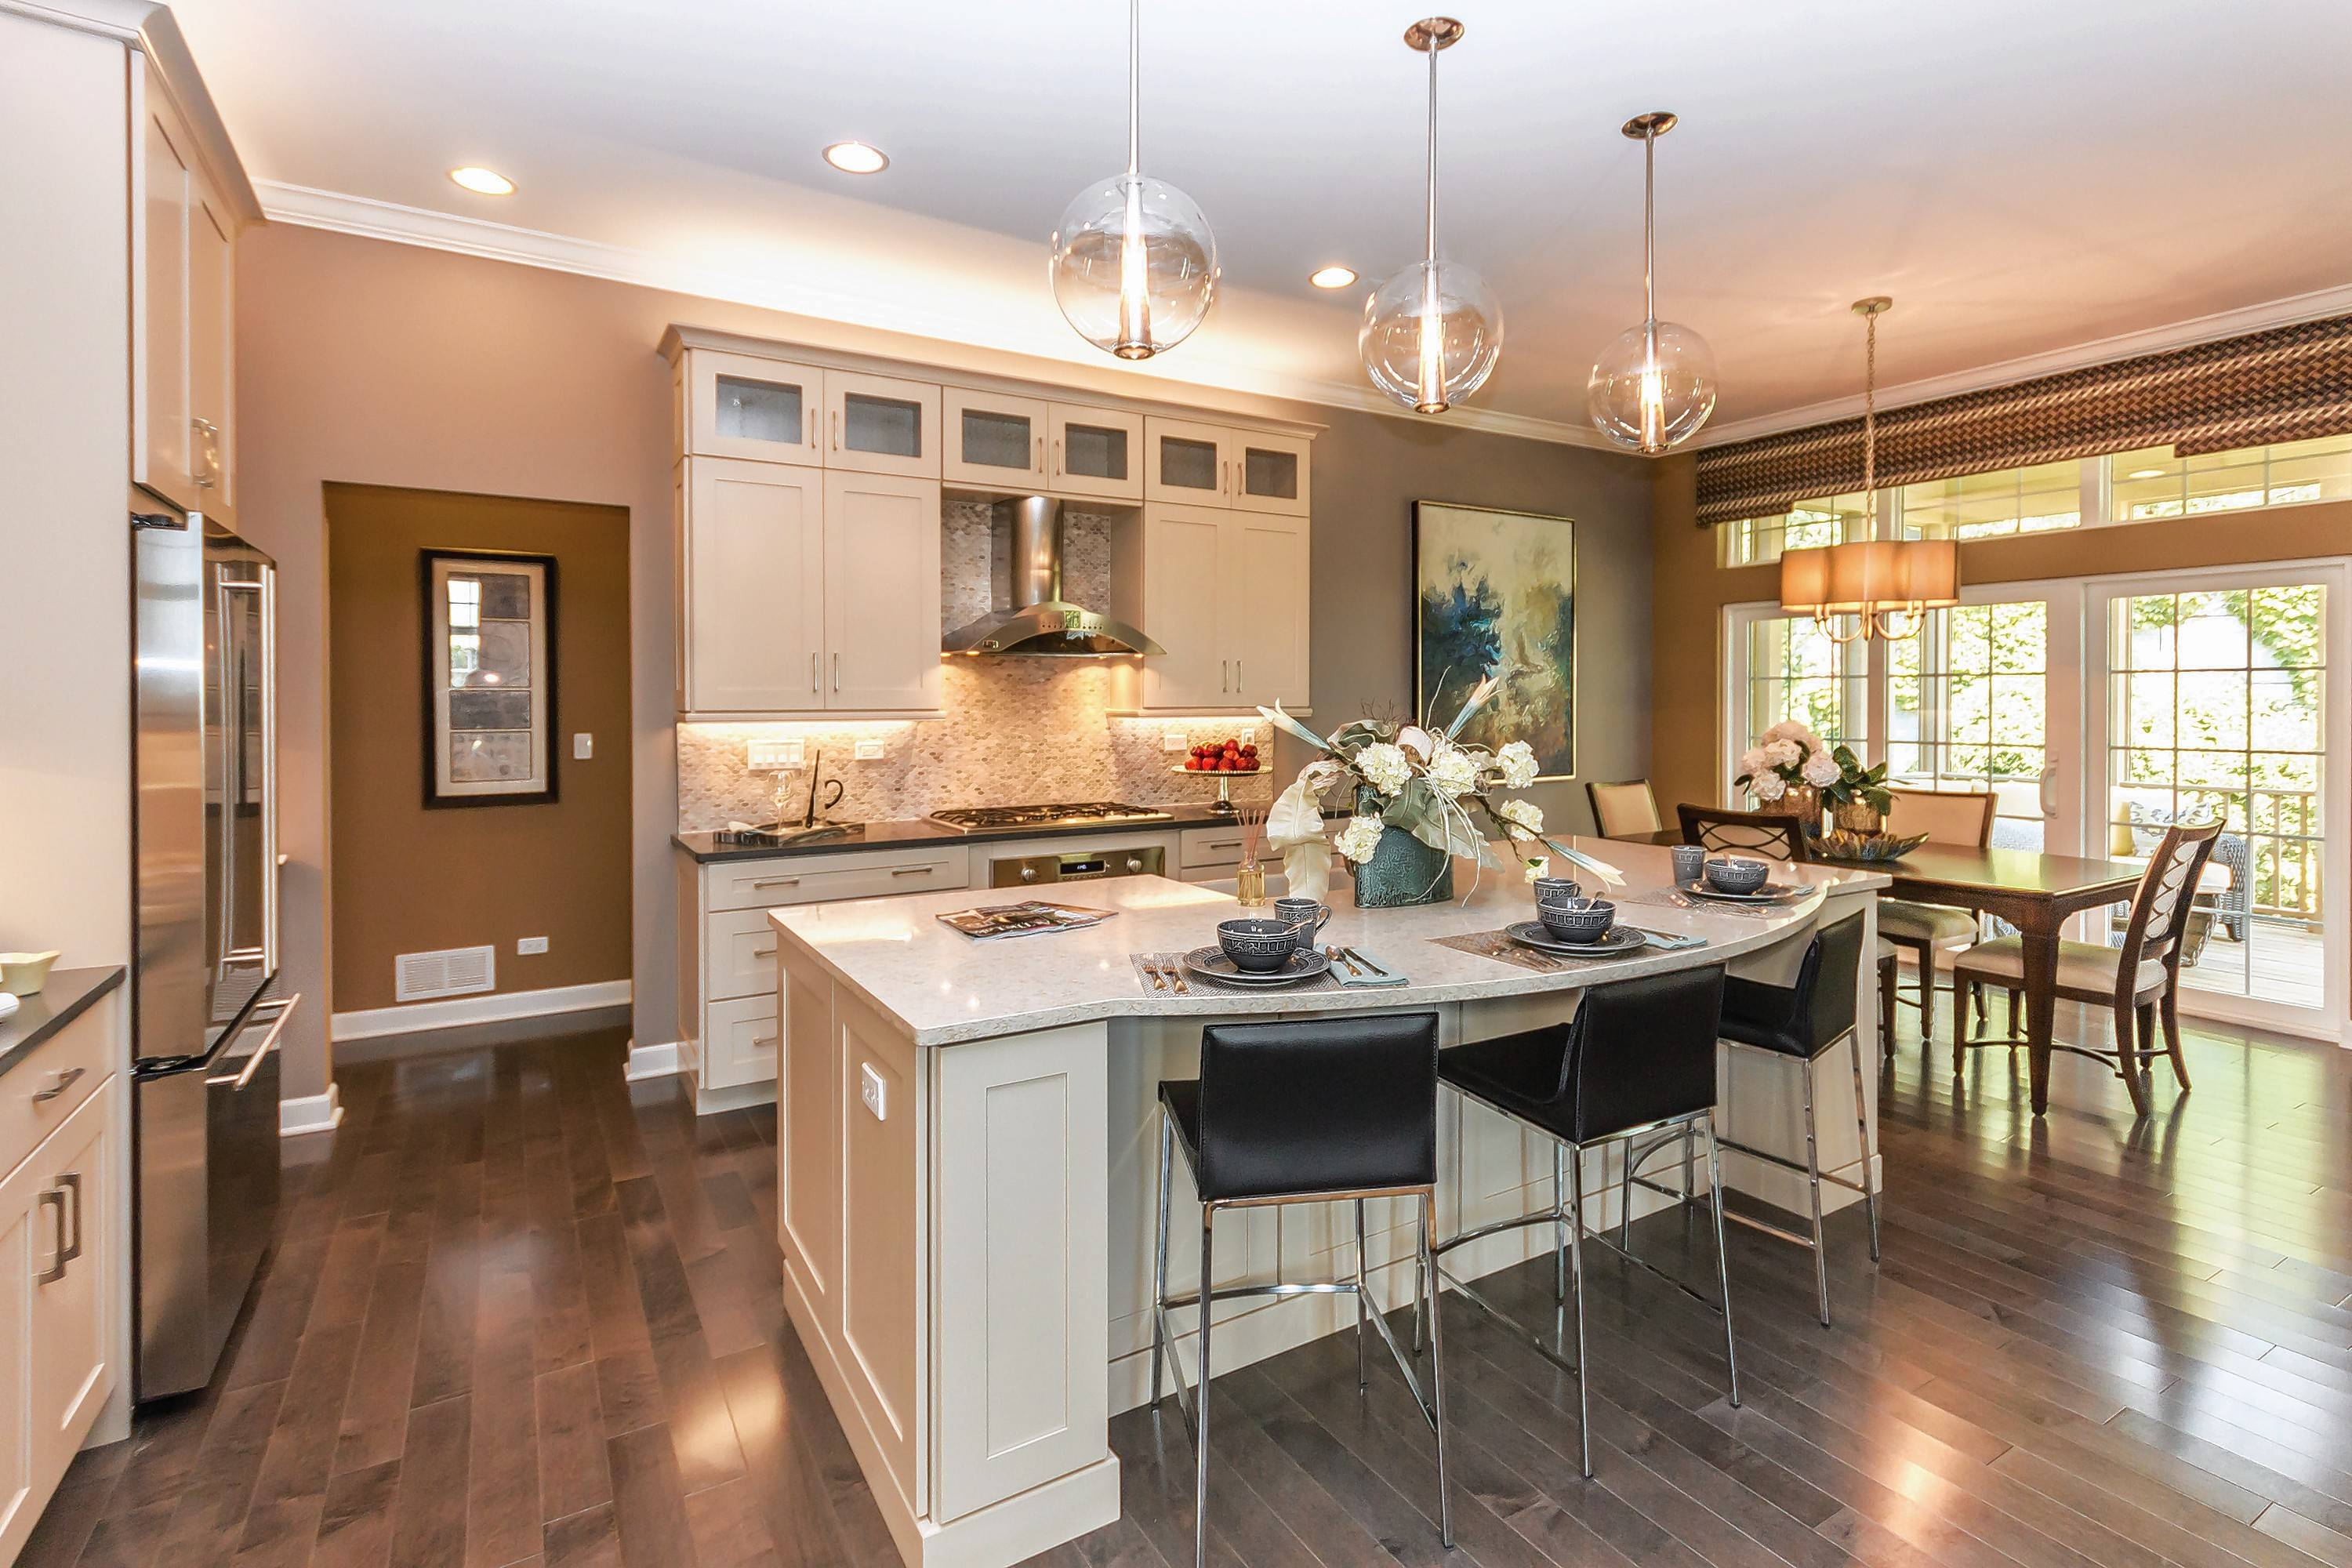 The kitchen is given a prominent spot in the open-concept floor plan. This & Budget for upgrades allocated between two rooms